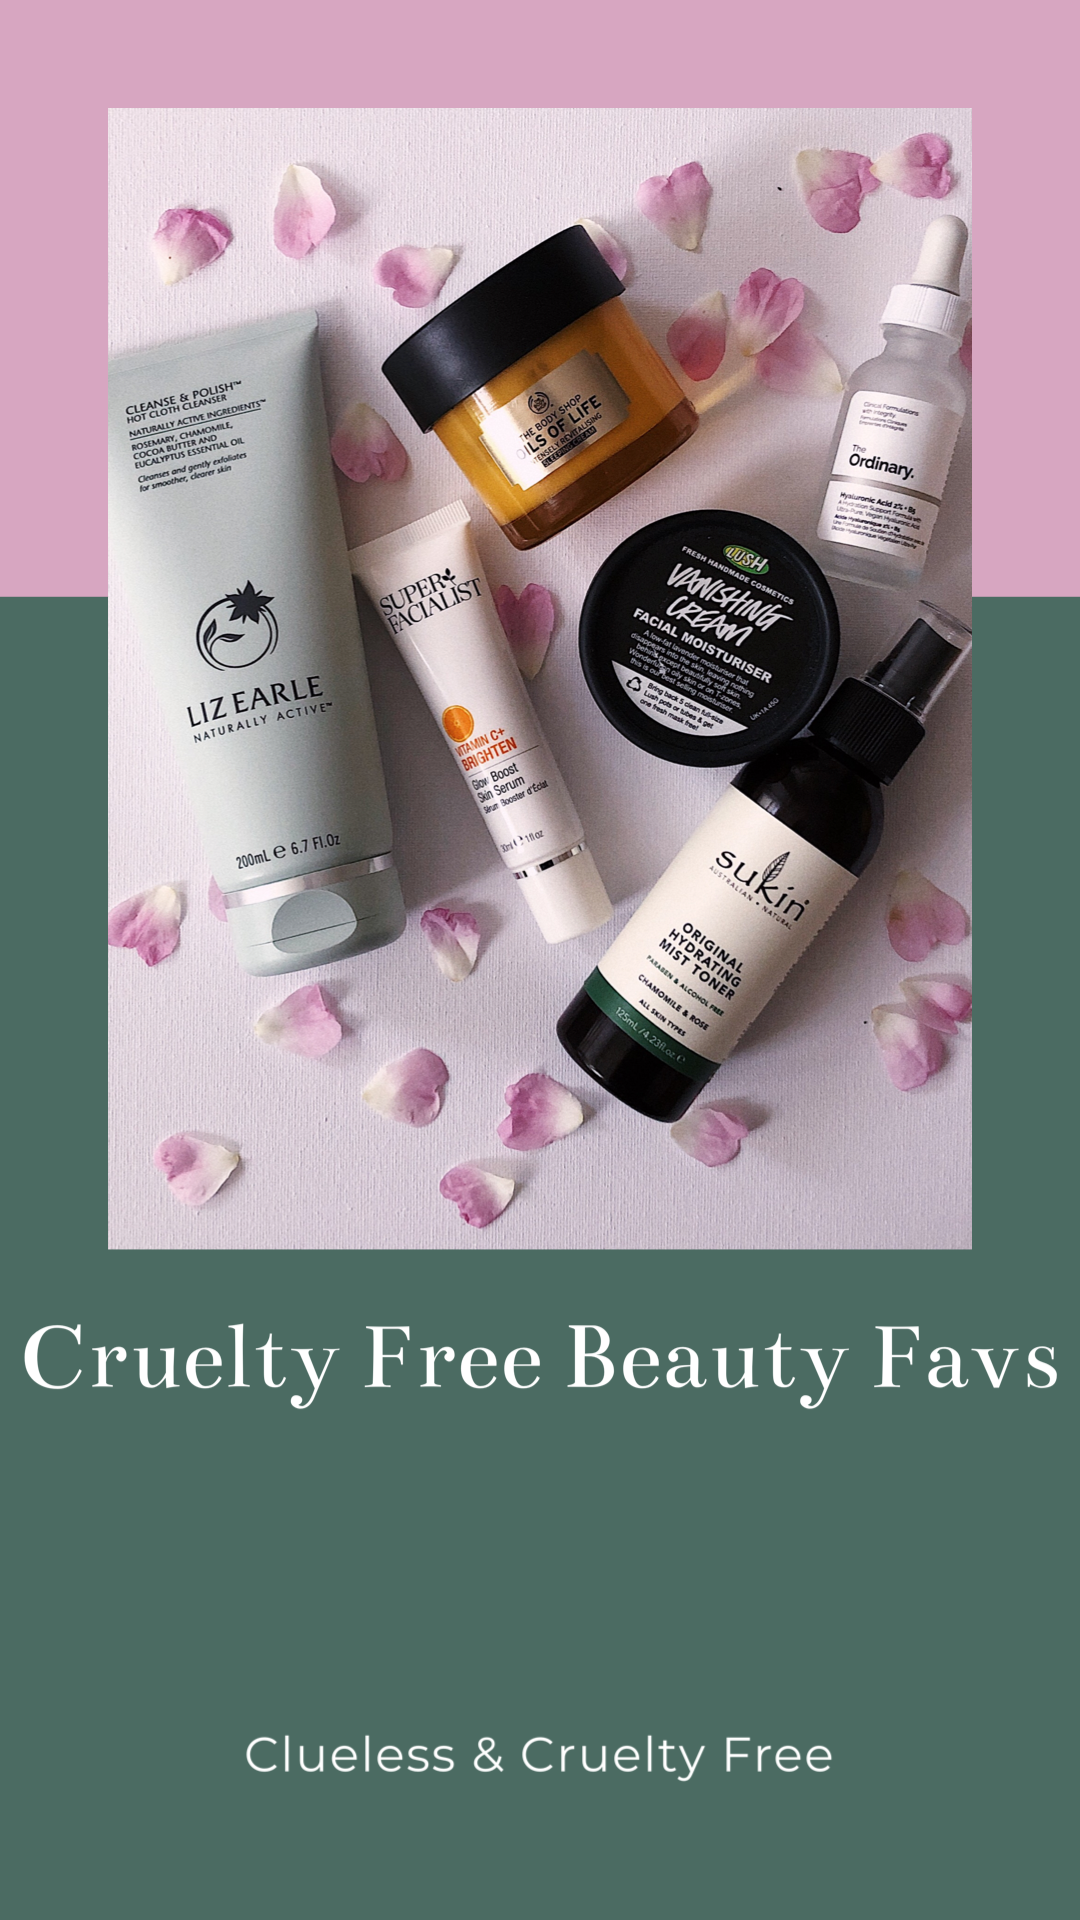 May Cruelty Free Beauty Favs In 2020 Cruelty Free Beauty Cruelty Free Vegan Beauty Brands